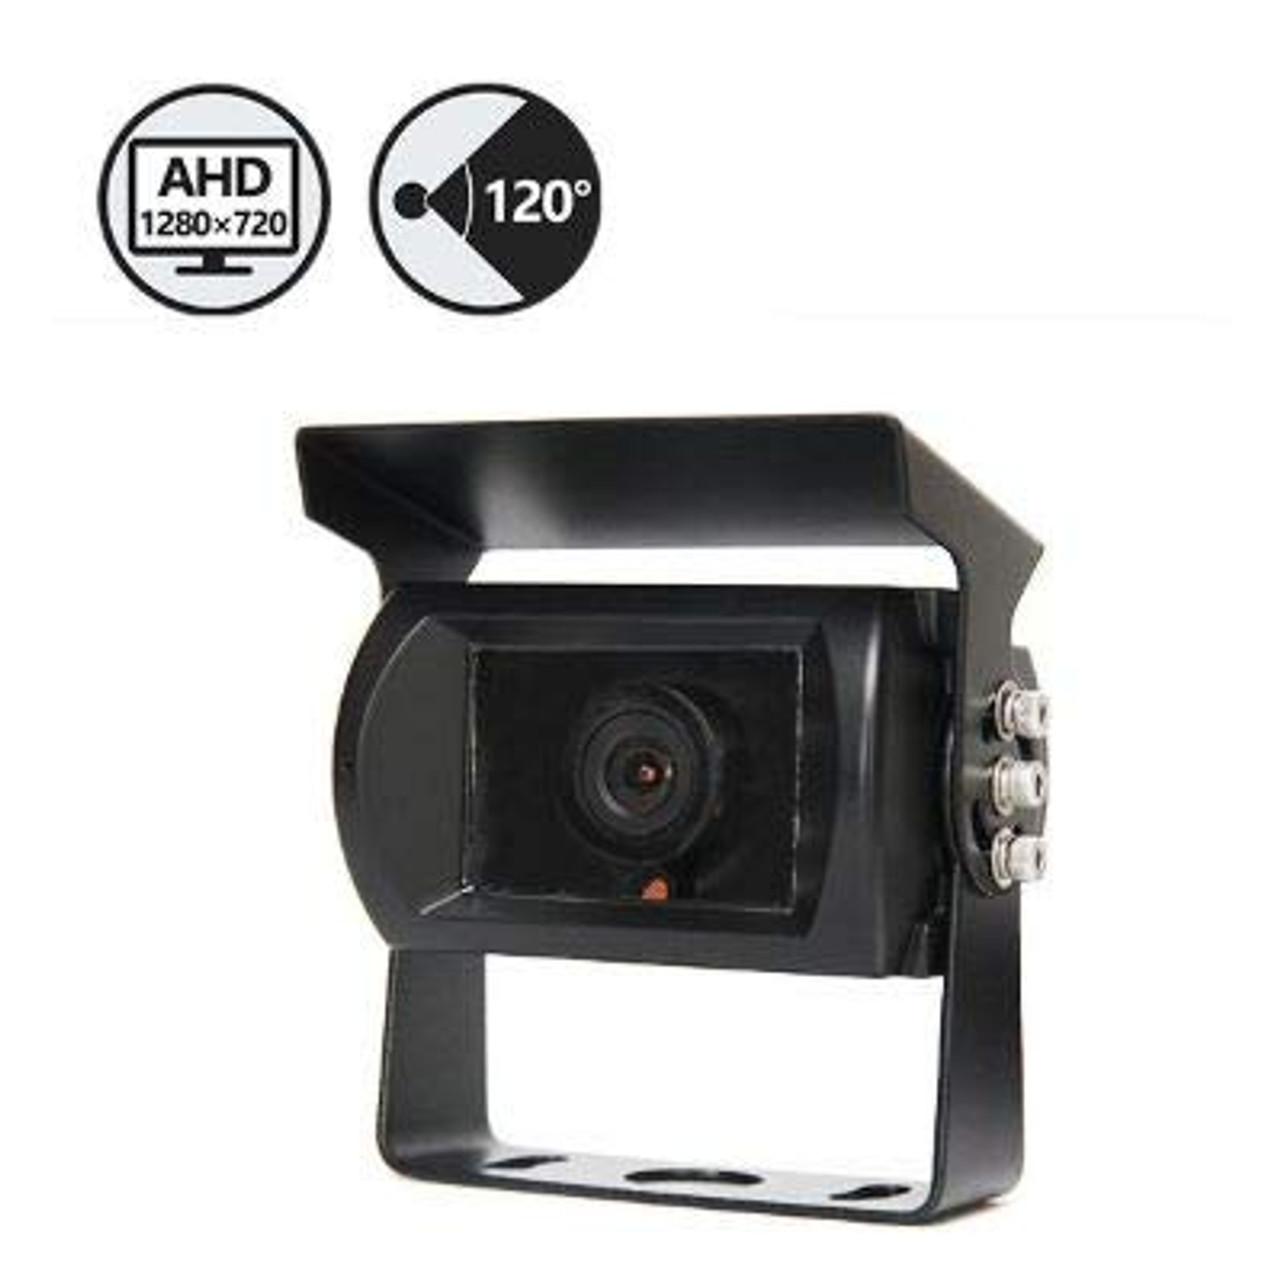 AHD 120° Backup Camera (RVS-770-AHD)